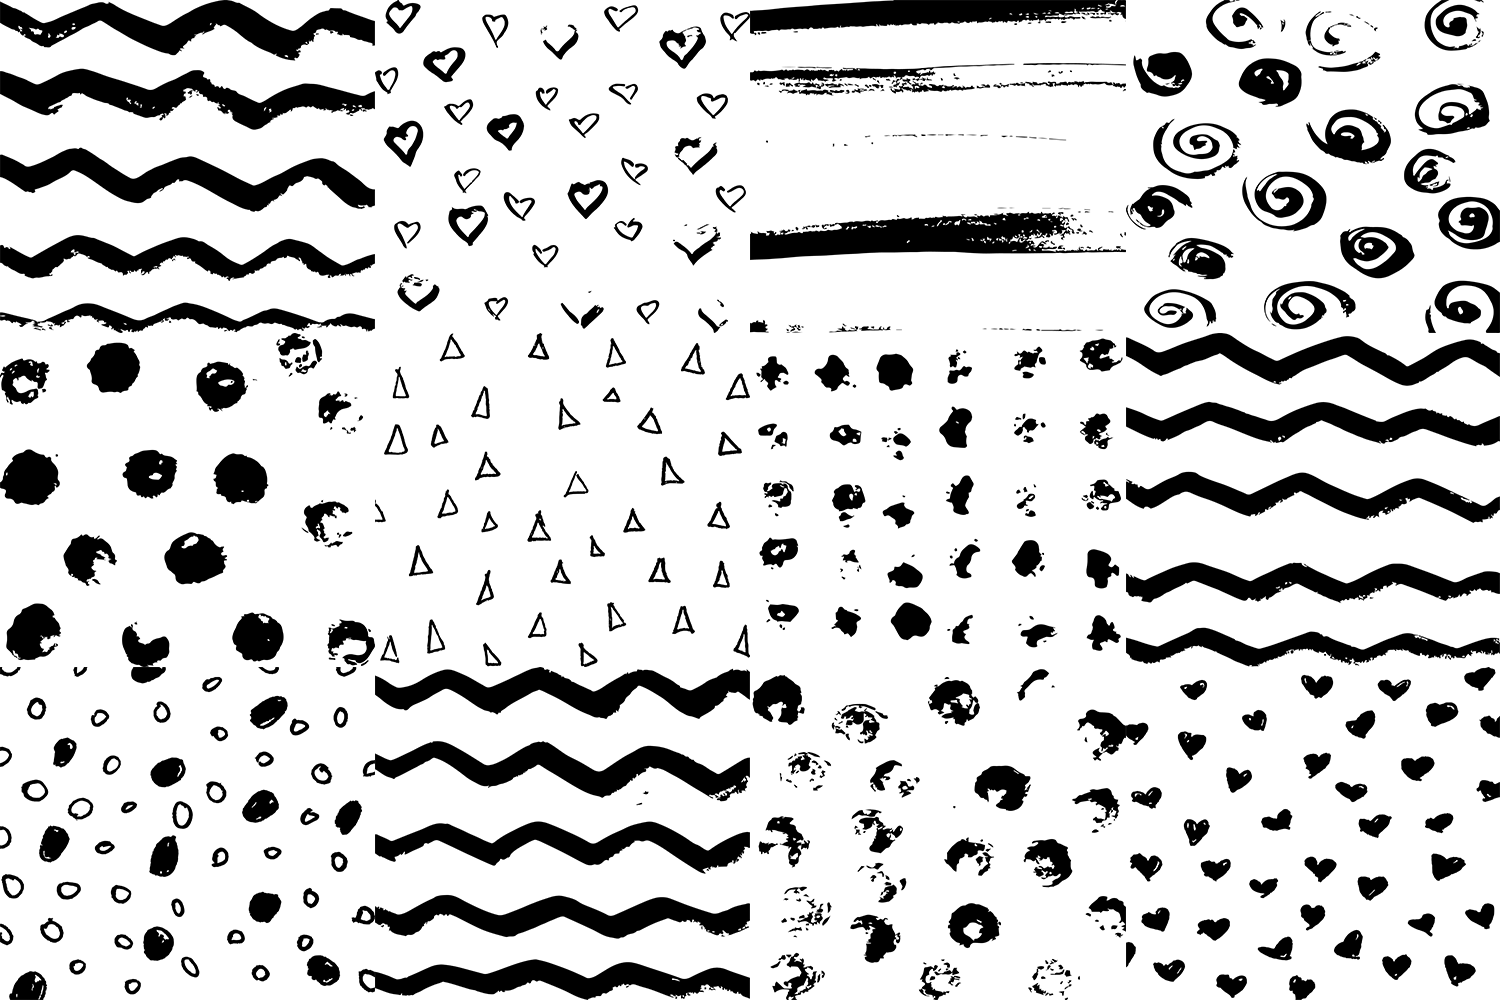 60 Black And White Patterns Bundle